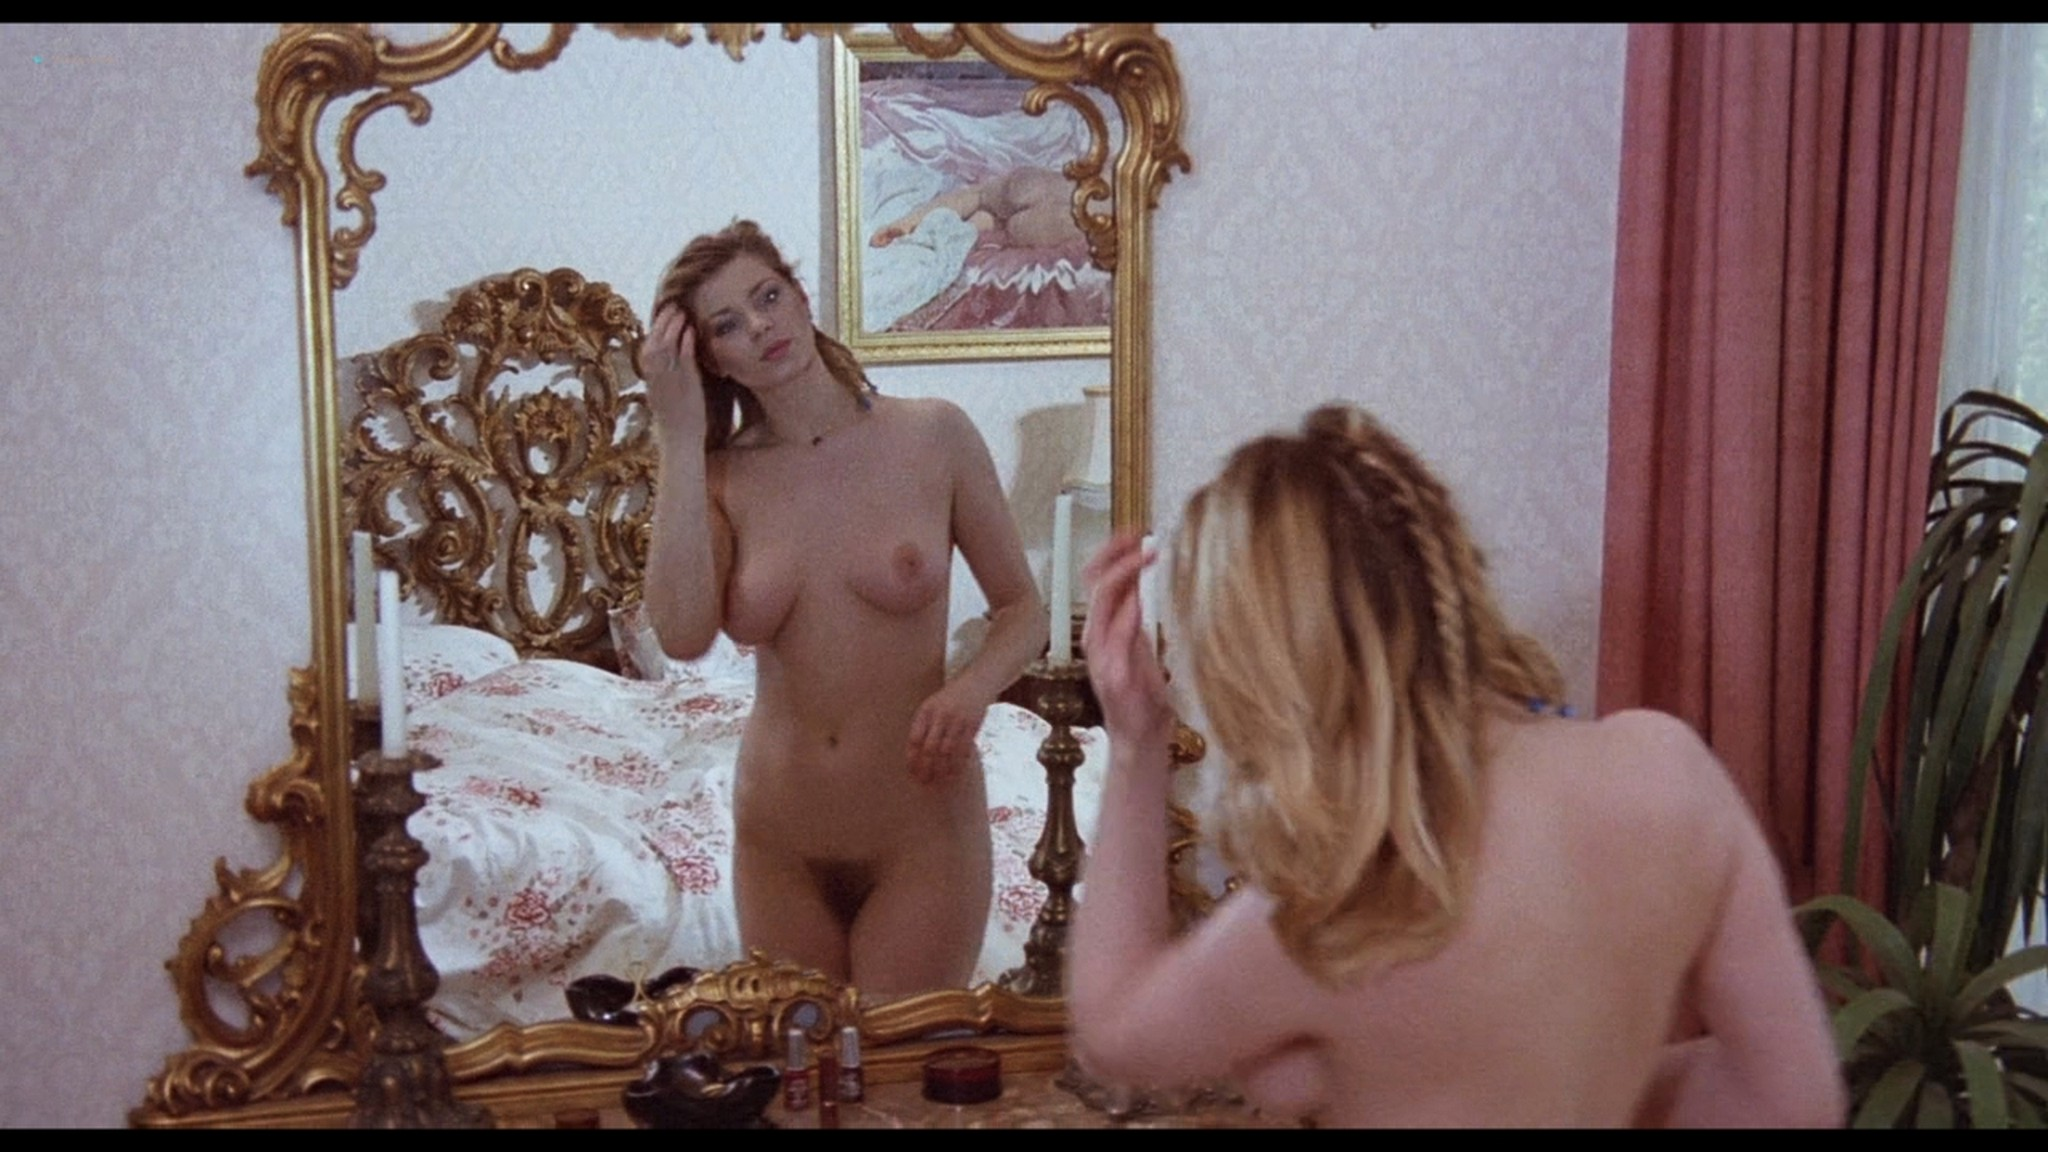 Brigitte Lahaie nude sex Elsa Maroussia and other lots of sex - Swedish Gas Pump Girls (1980) HD 720p BluRay (15)